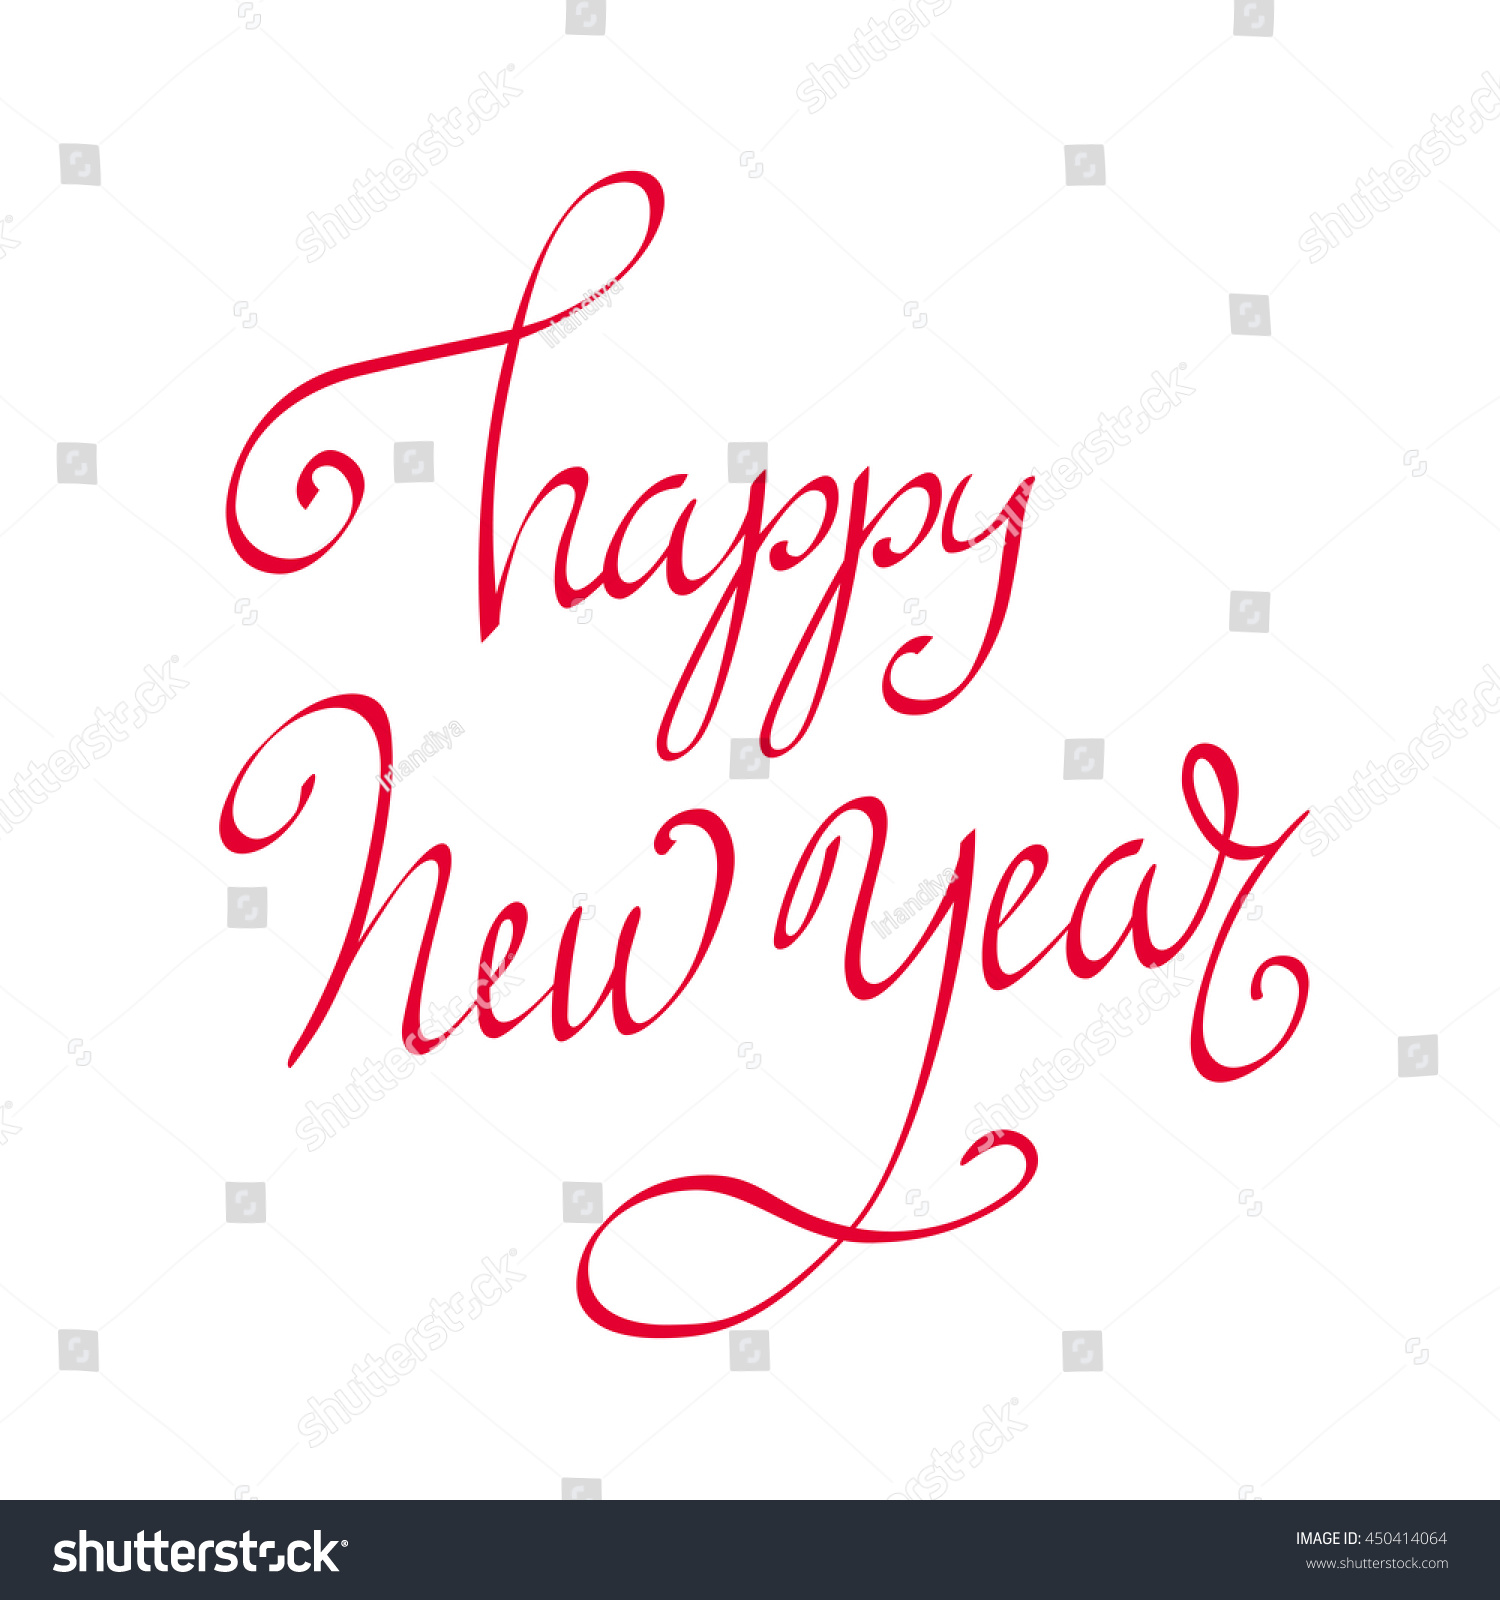 New year calligraphy images